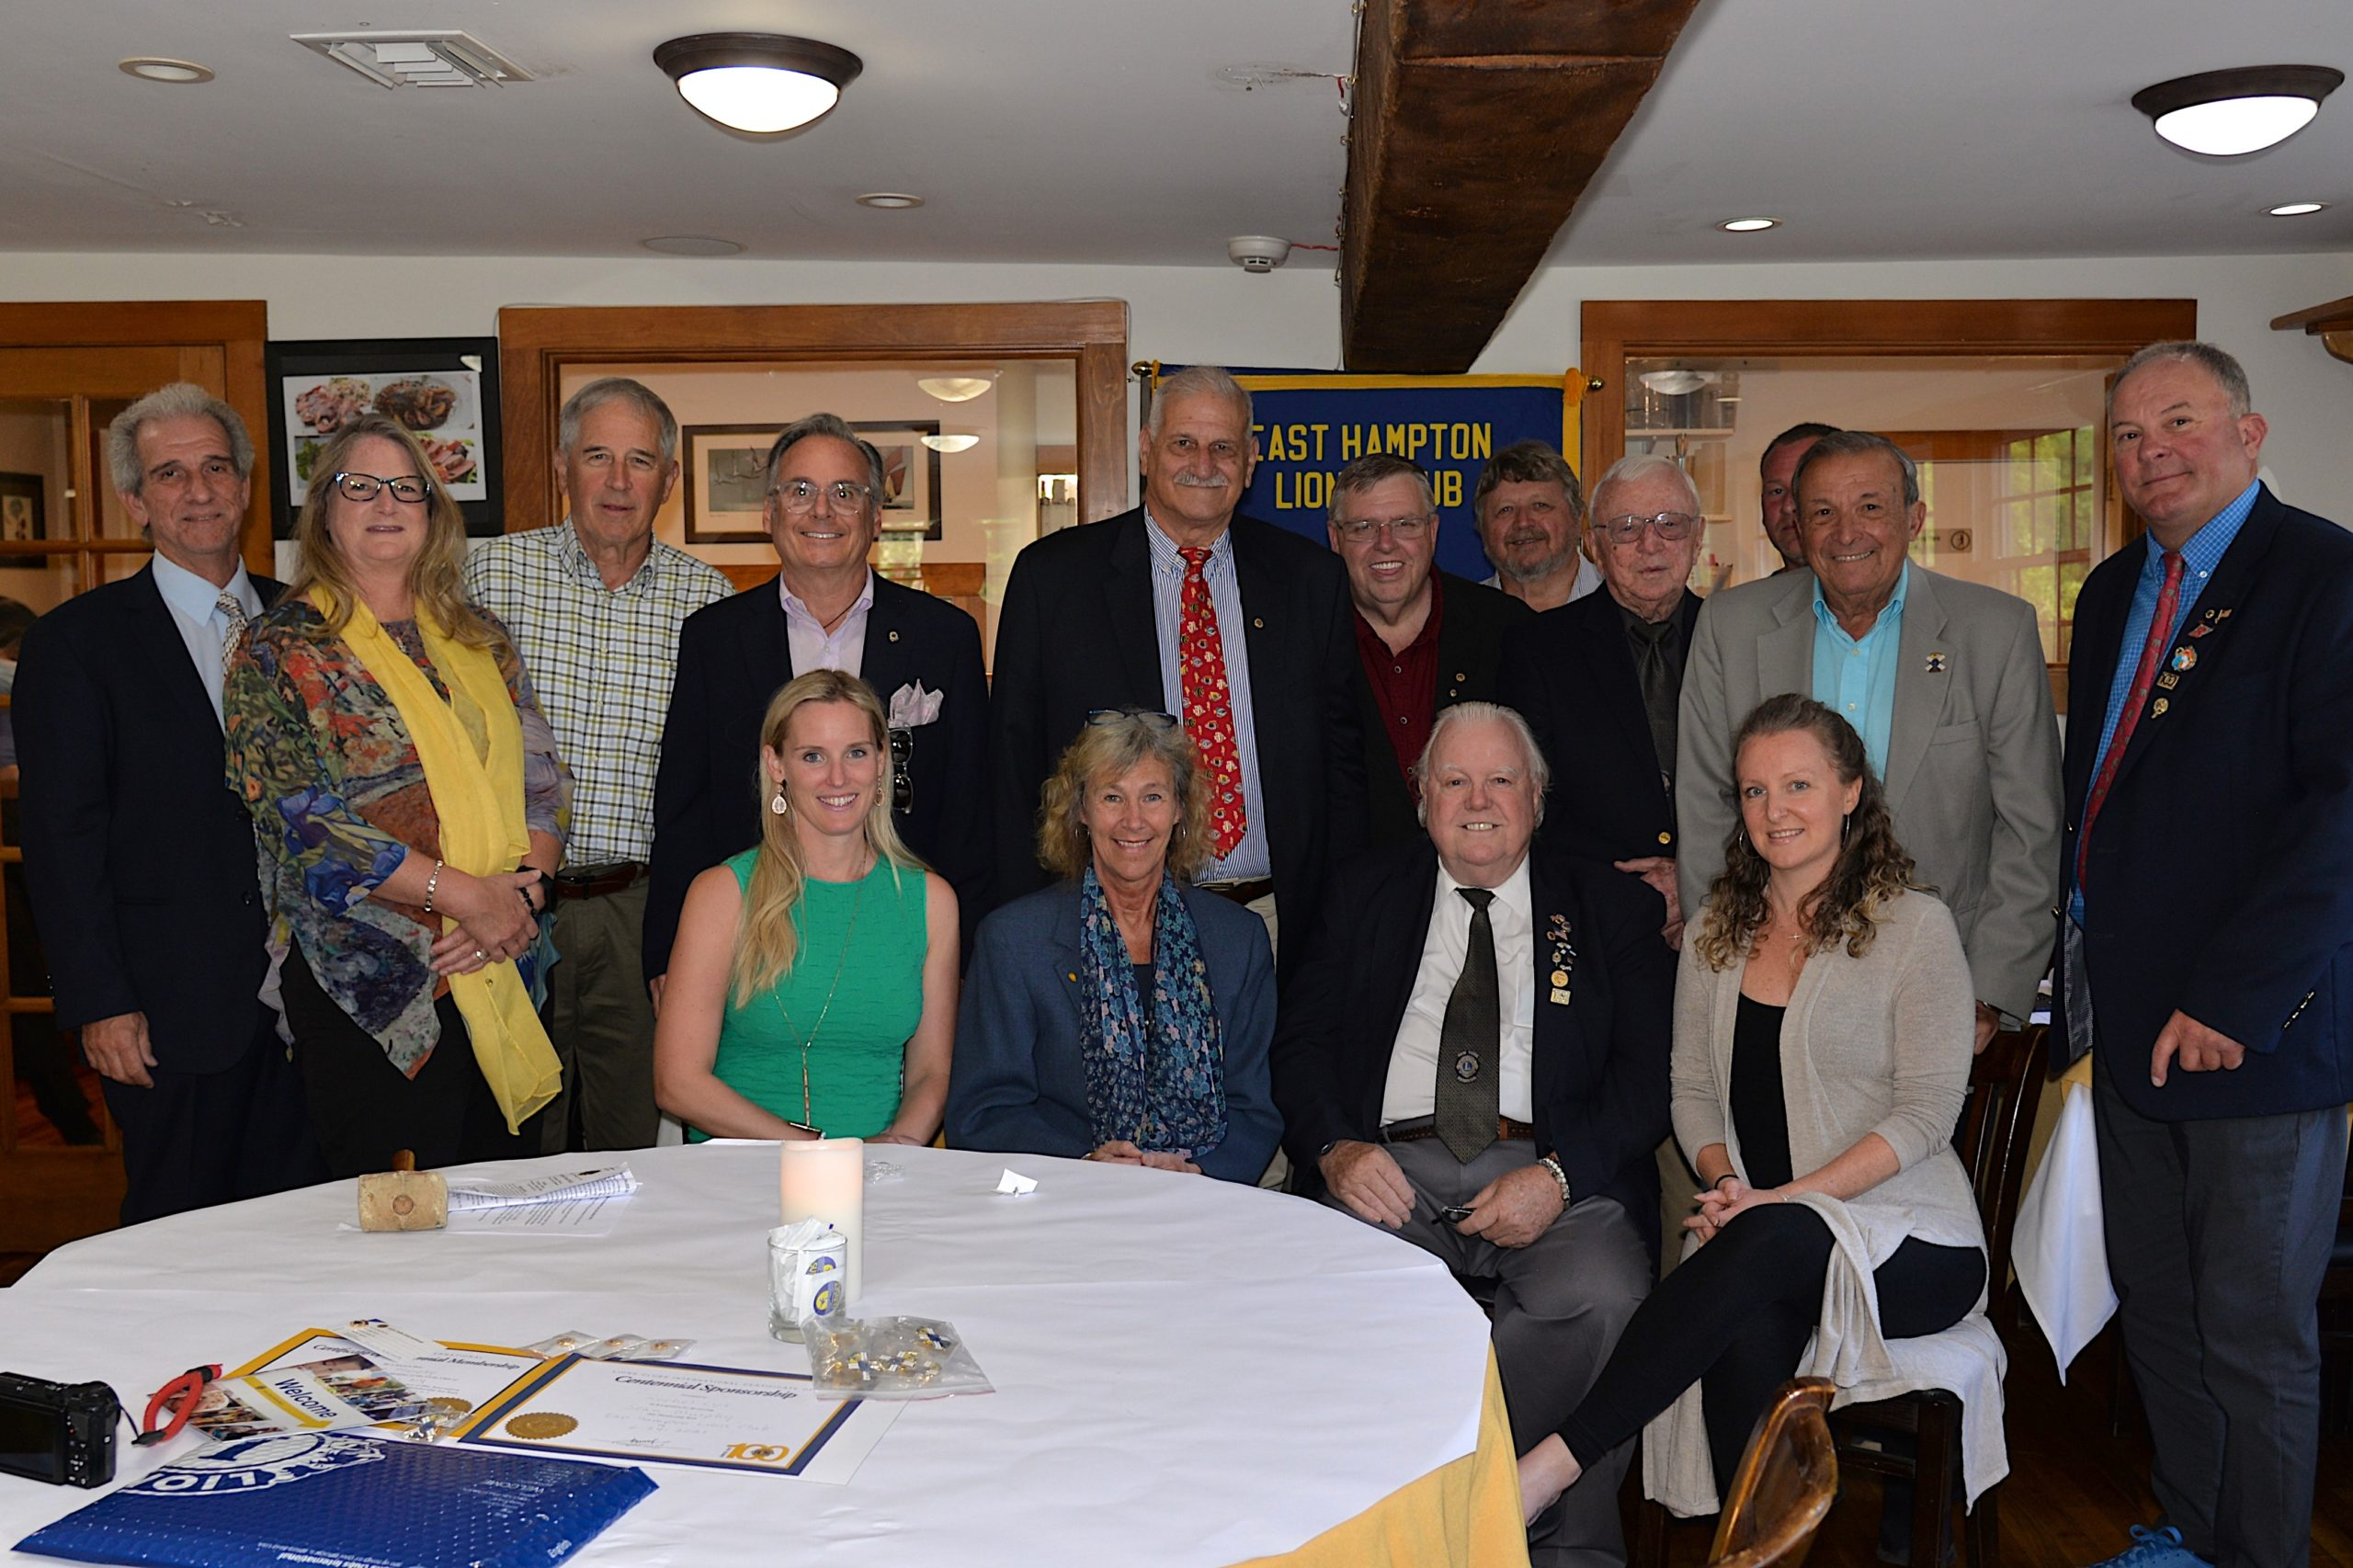 Members, Directors and Officers of the East Hampton Lions Club attended an installation dinner at The Blend on Thursday, June 24. The Club, which has been chartered locally since 1949, is current led by President Stephen Lynch, Sr., whose son, Stephen Lynch Jr. is also a member of the service-oriented organization.